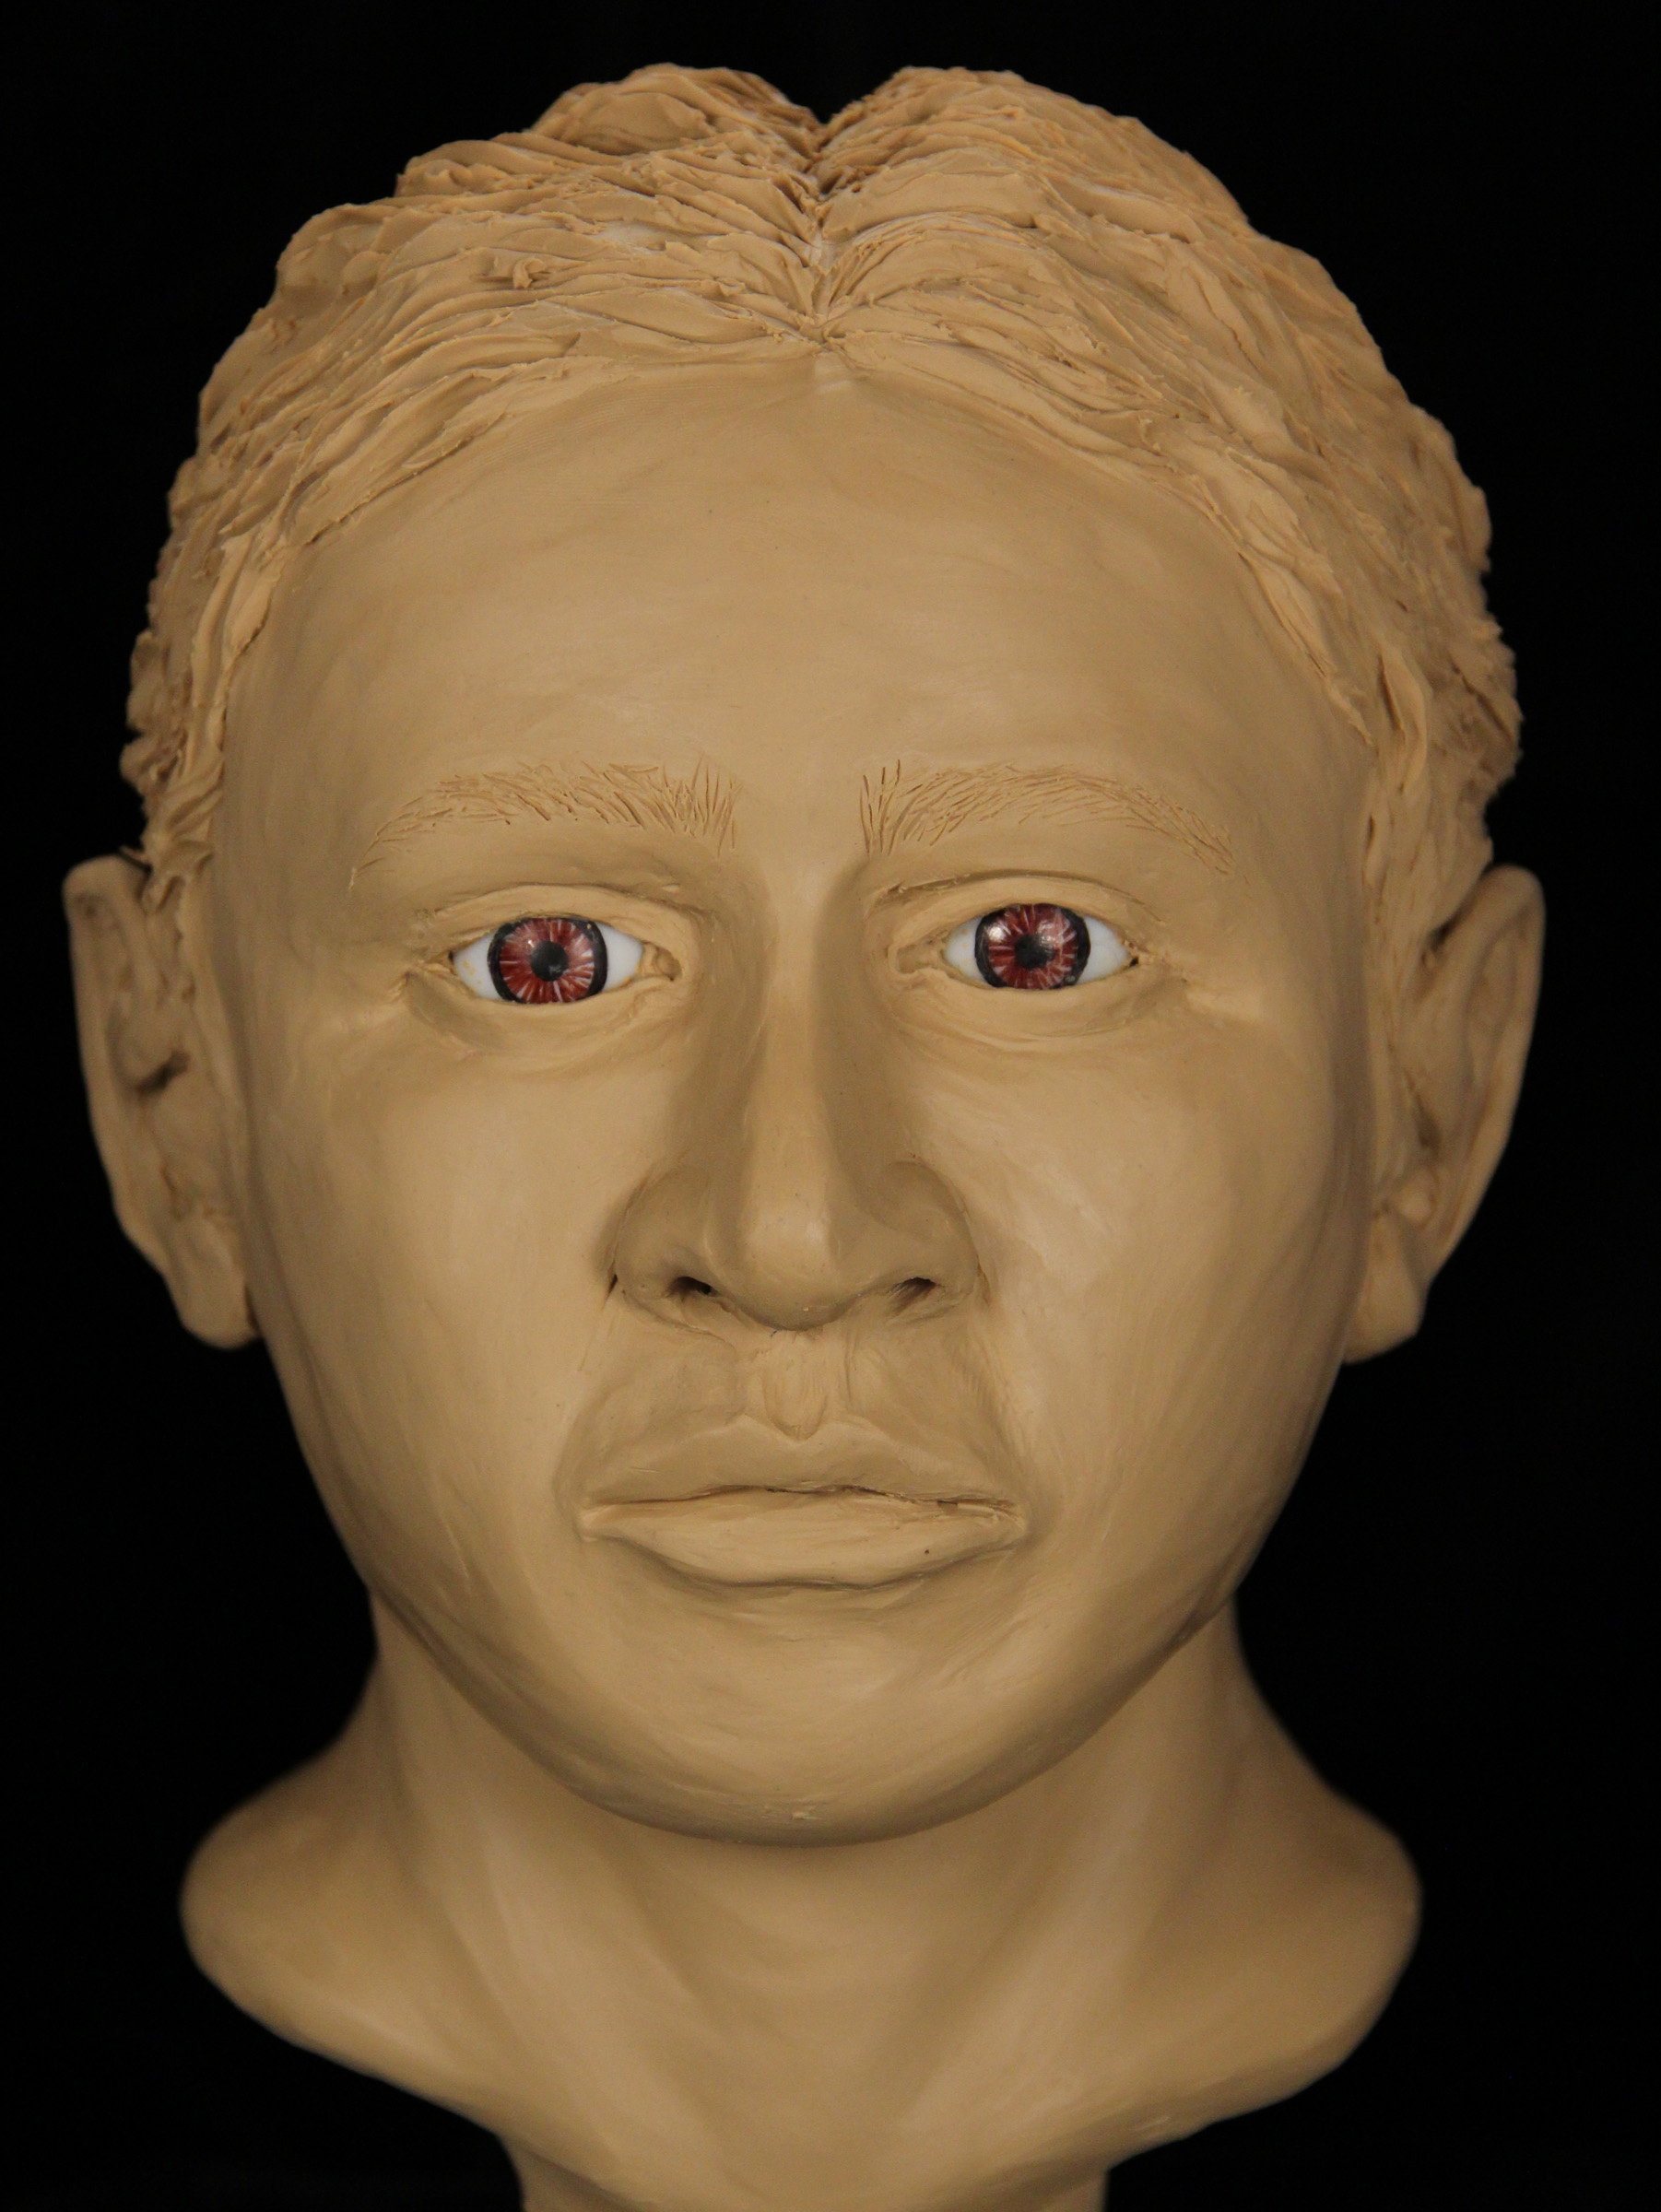 Hillsborough County Jane Doe (1975)